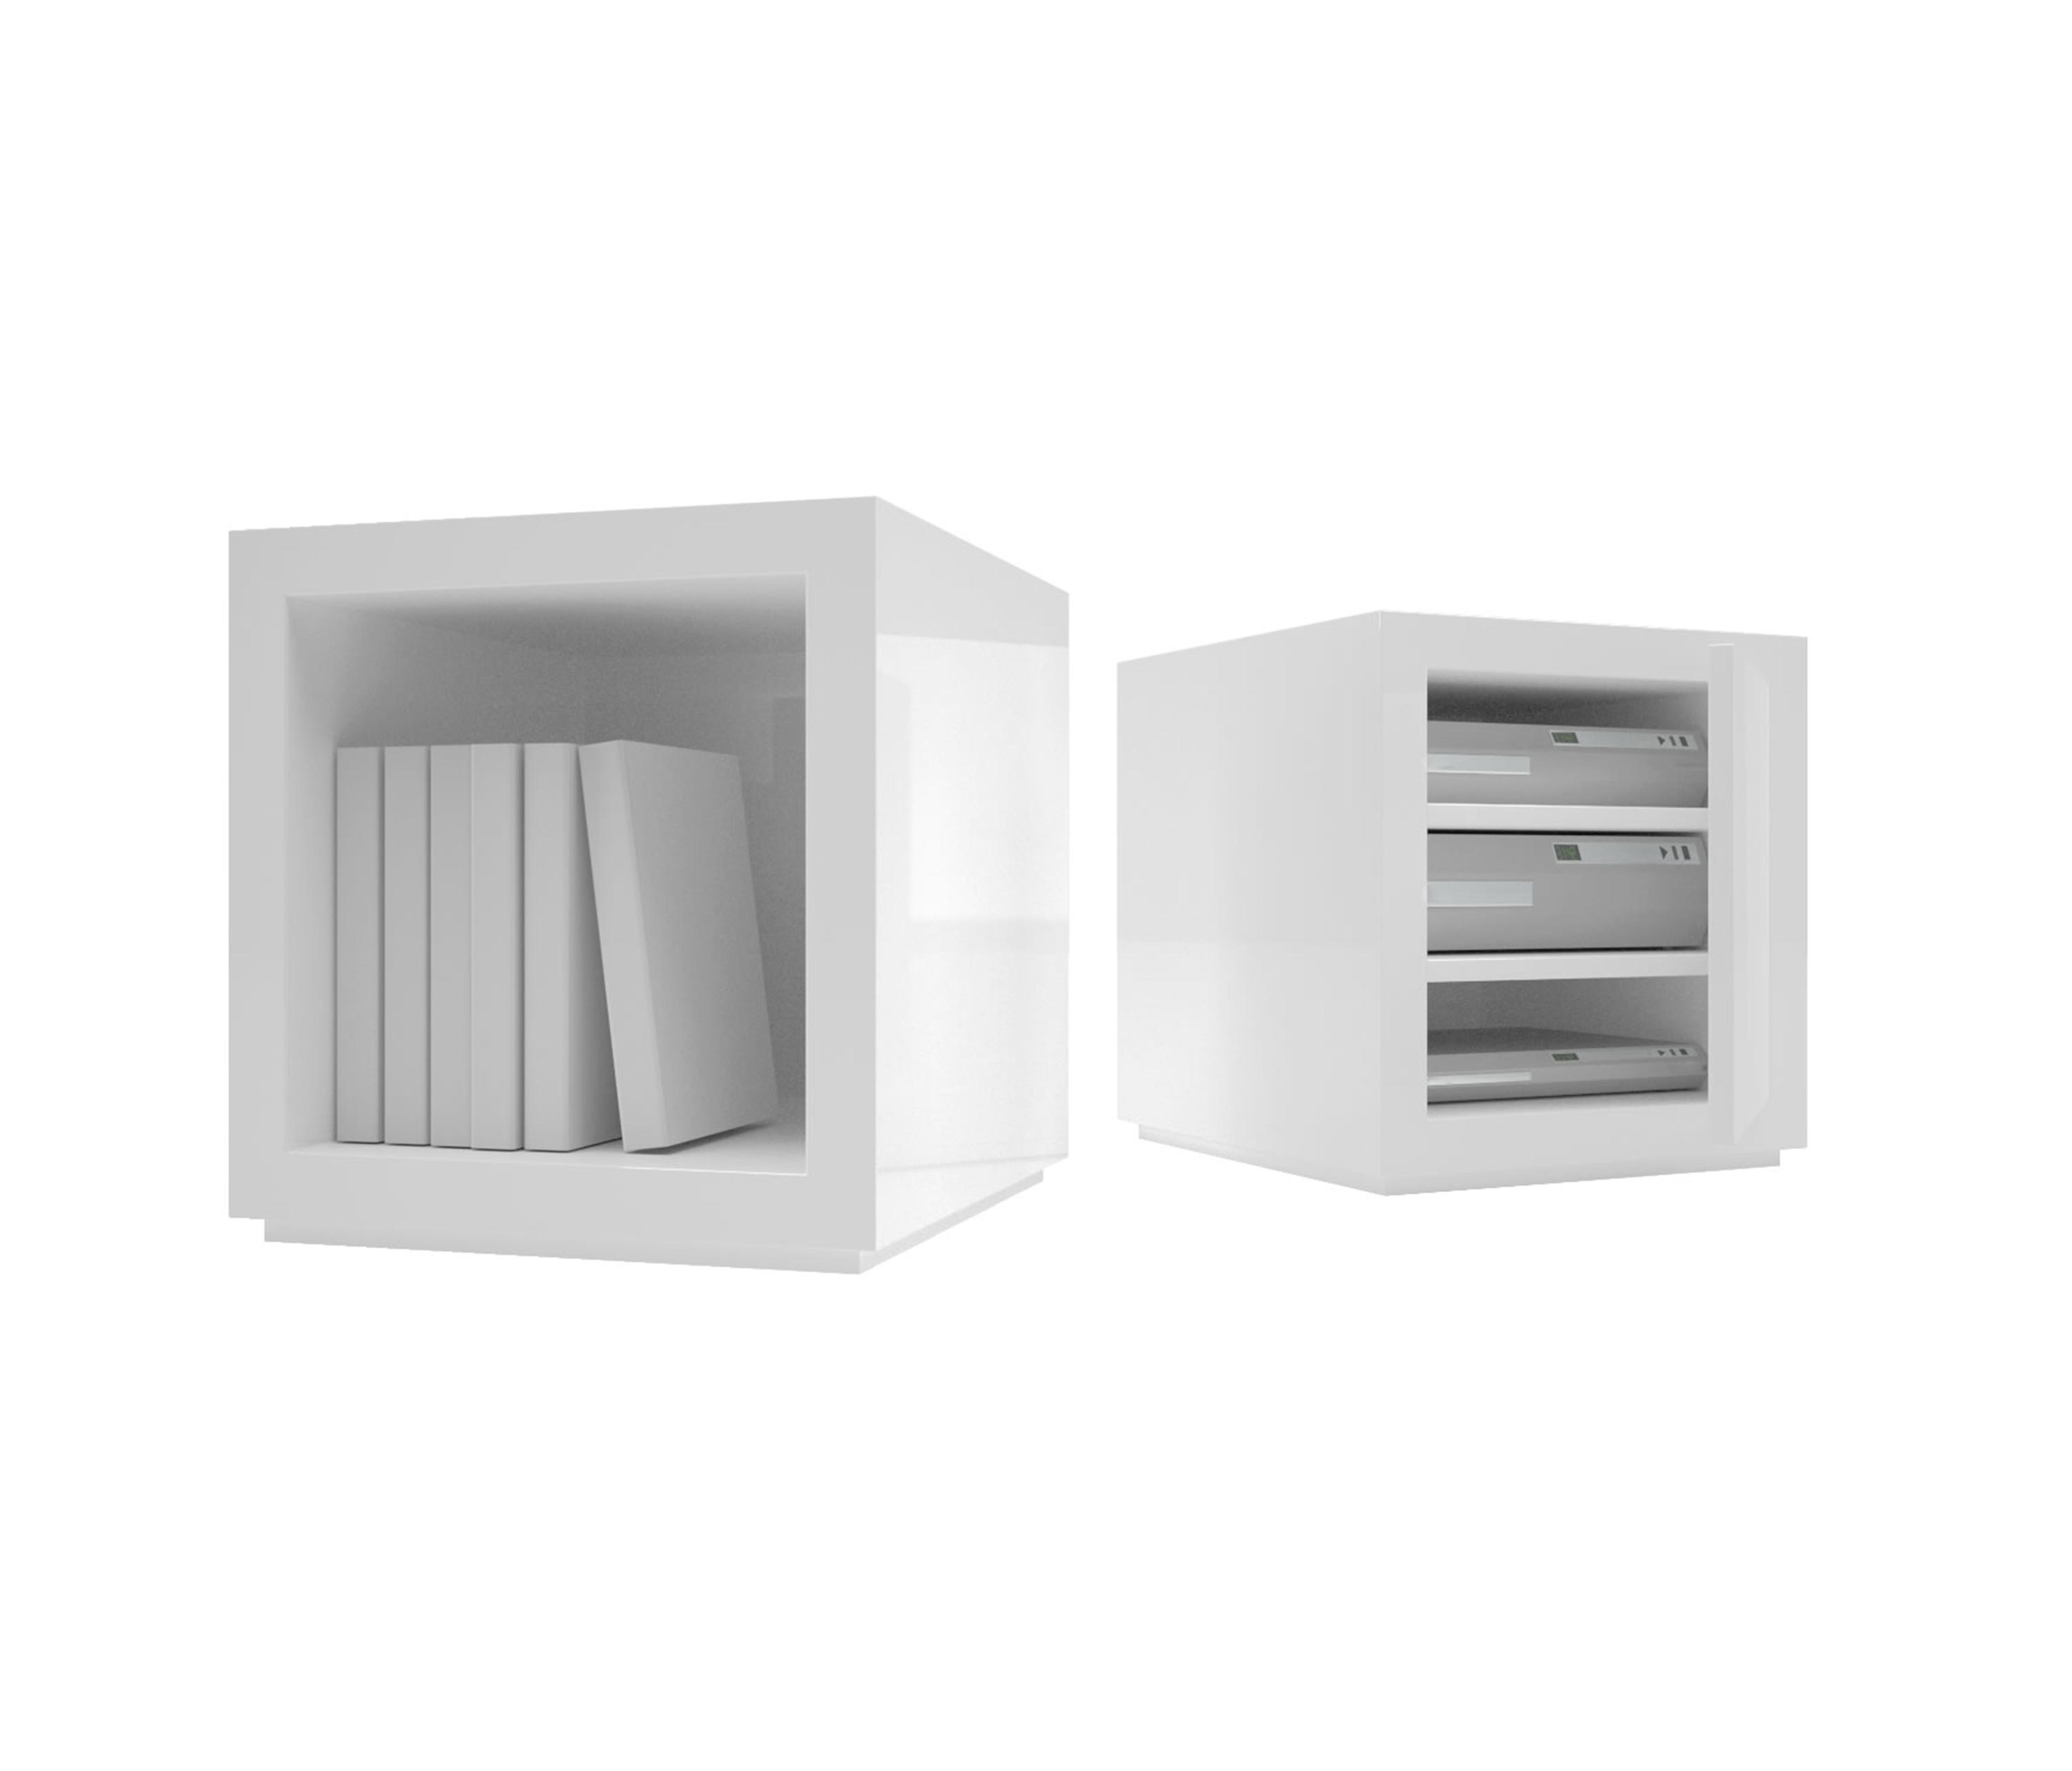 LECTULUS SHELF CUBE - Shelving modules from Rechteck | Architonic